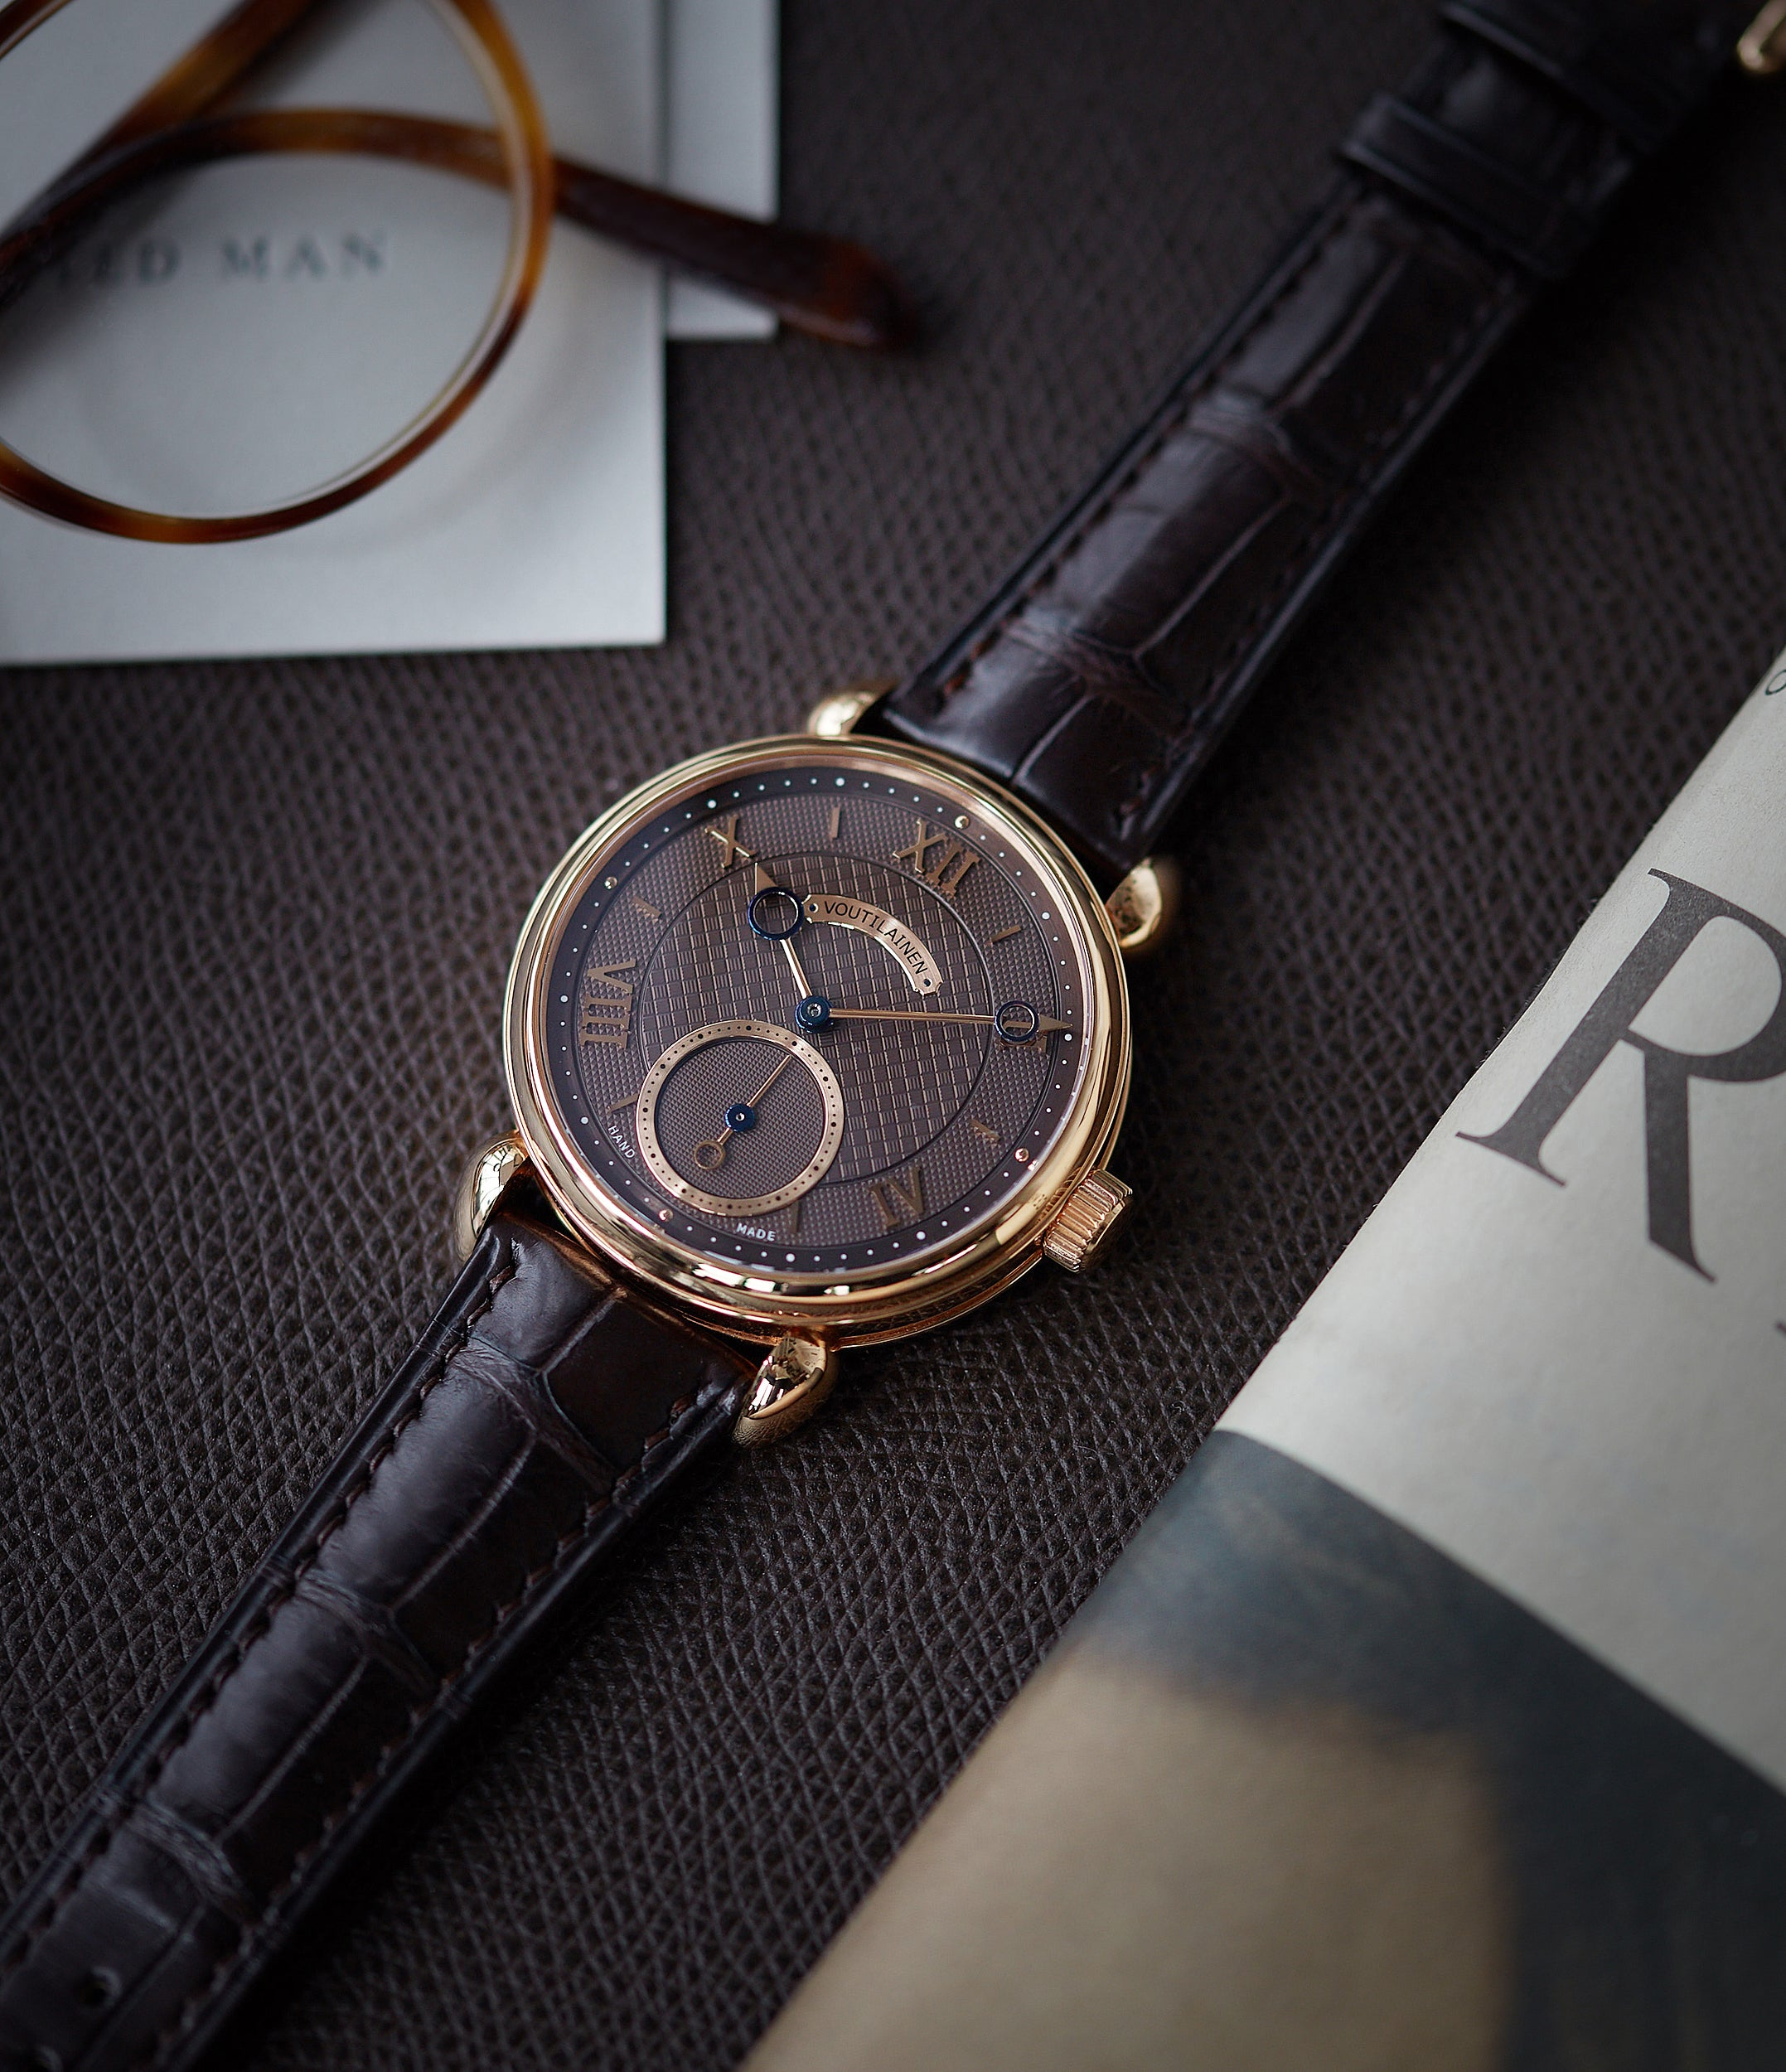 Voutilainen Vingt-8 Cal. 28 rose gold dress watch with brown guilloche dial for sale at A Collected Man London approved re-seller of preowned Voutilainen watches